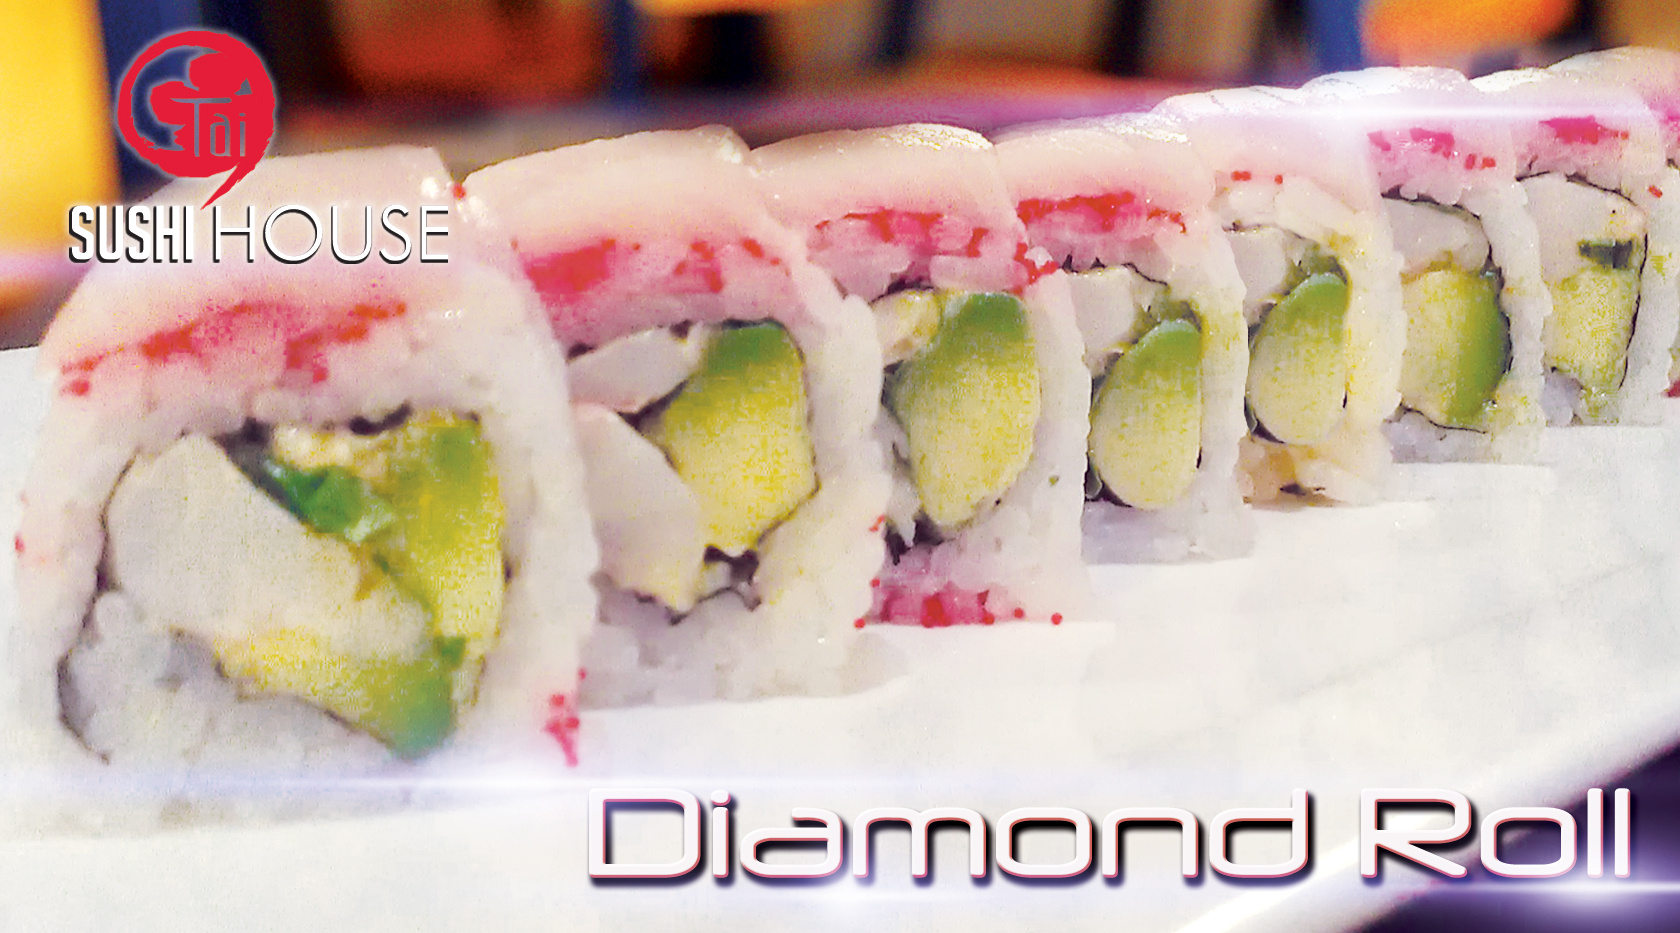 Diamond Roll